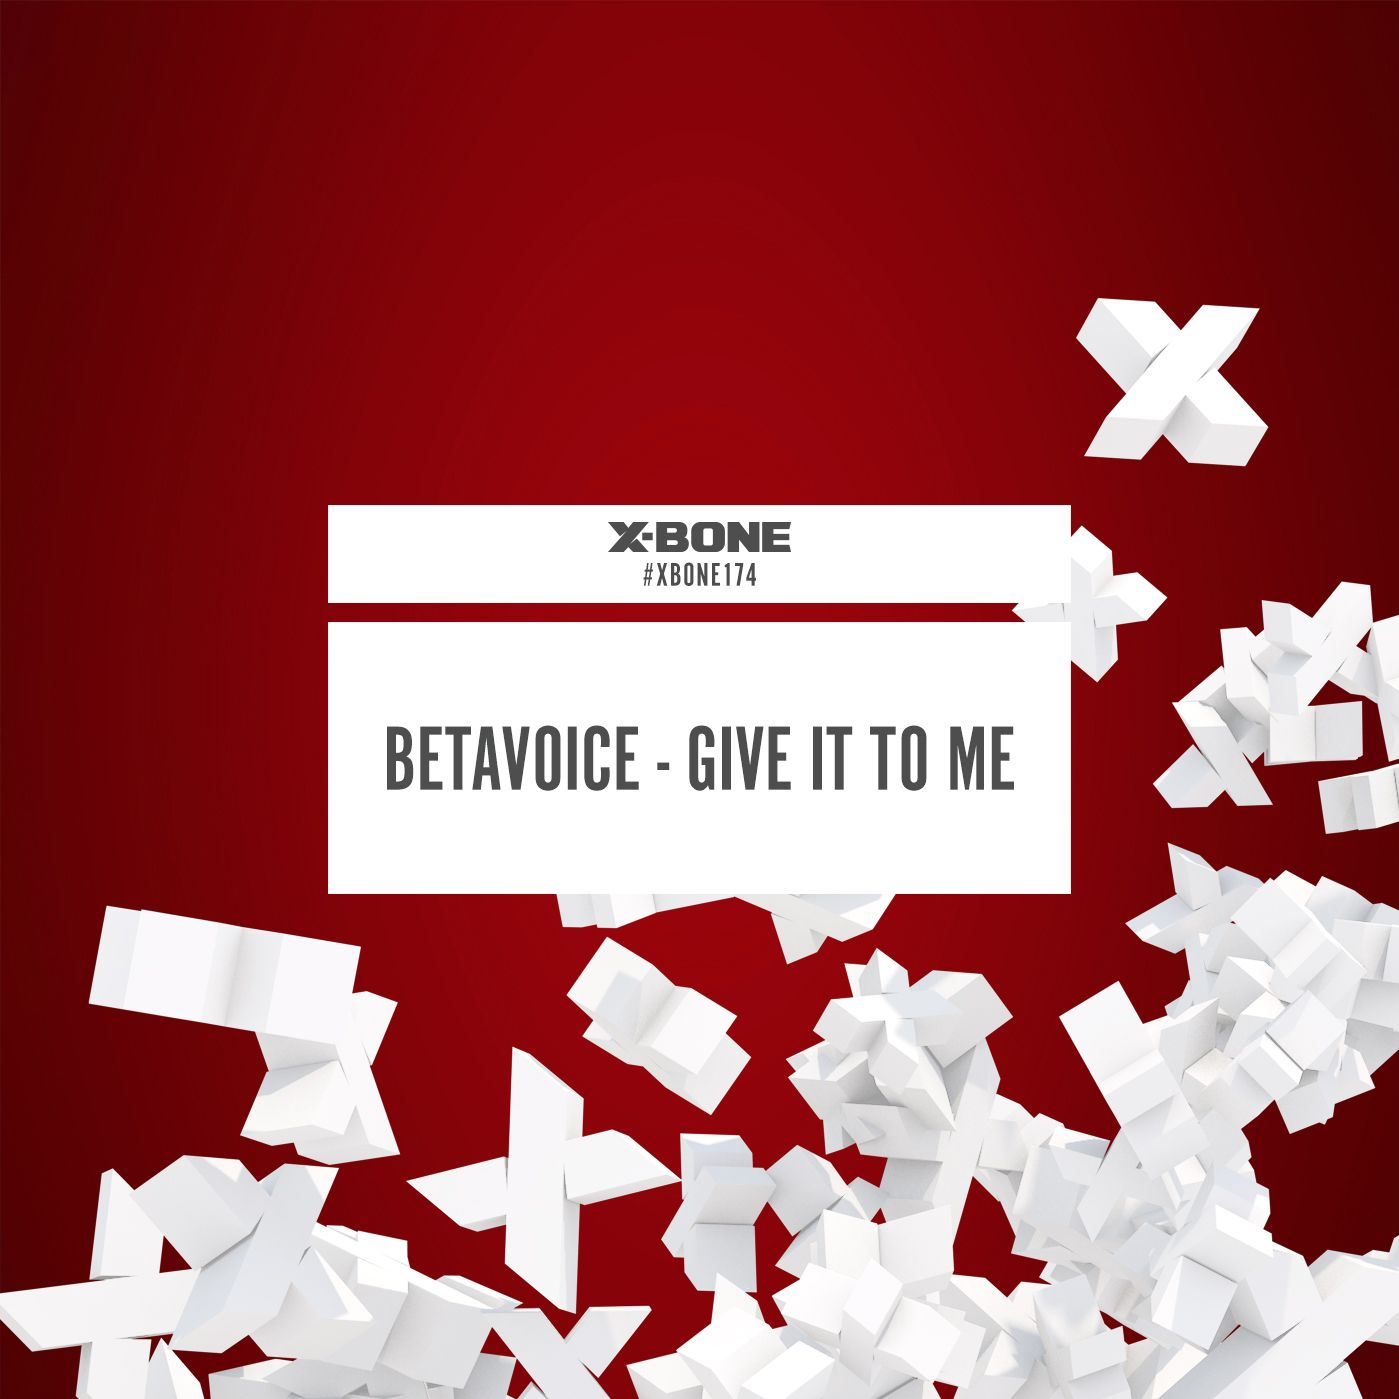 Betavoice - Give It To Me [X-BONE RECORDS] XBONE174